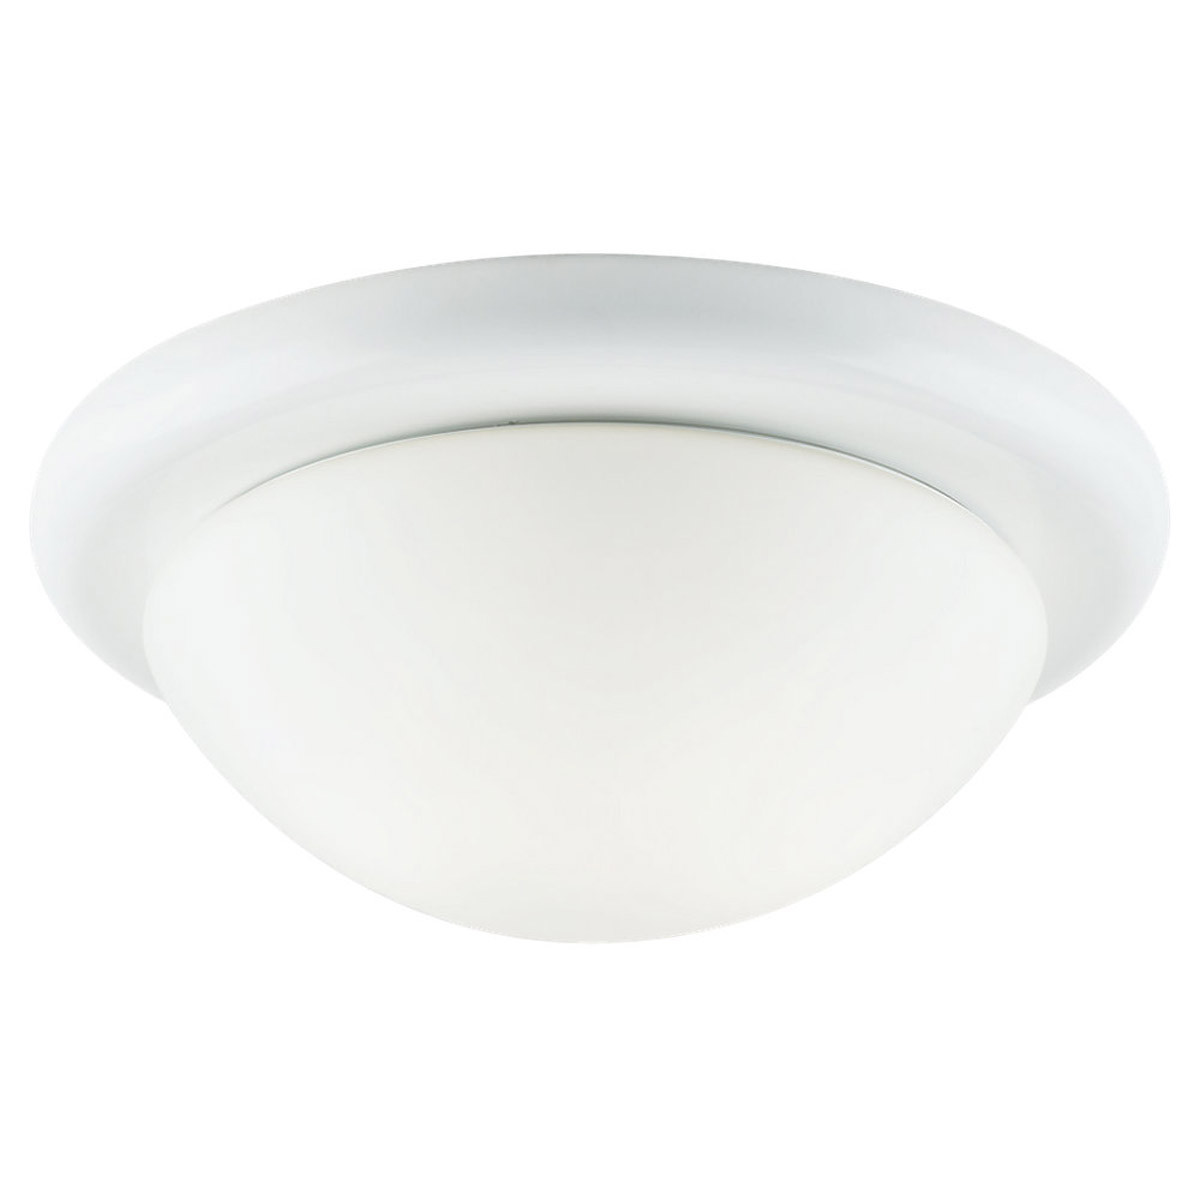 Sea Gull Lighting Signature 3 Light Flush Mount in White 53074-15 photo